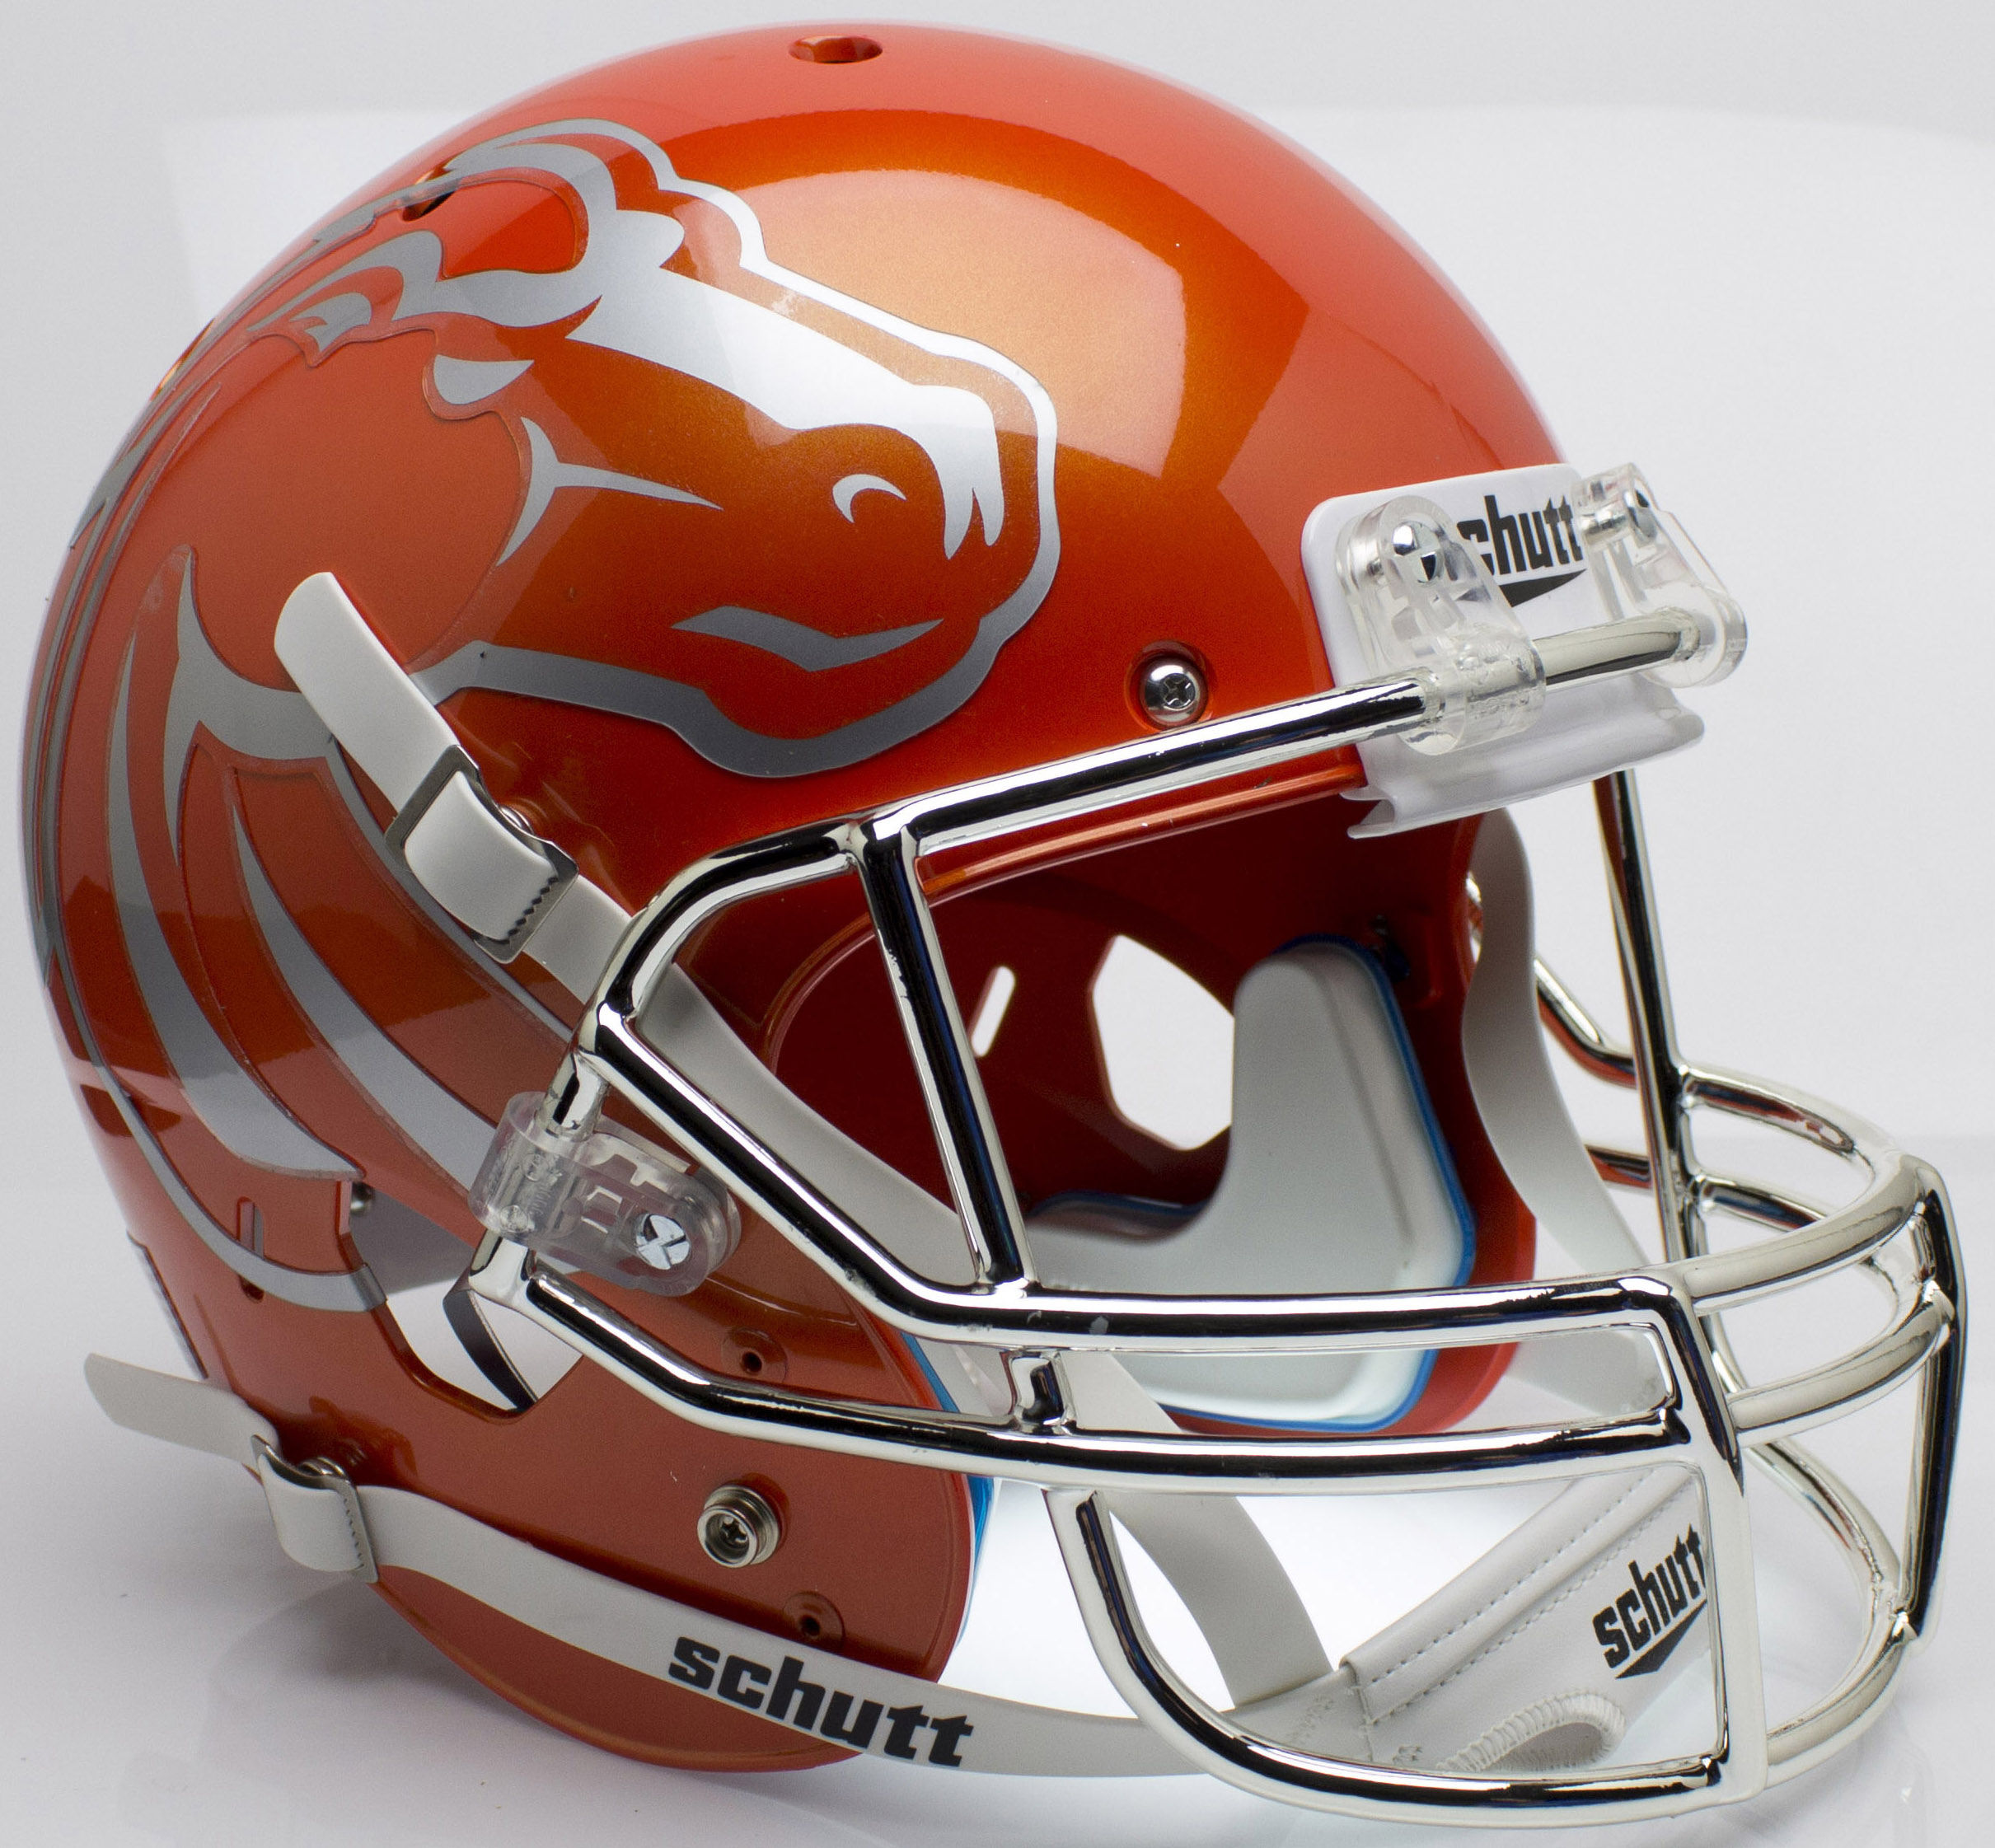 Boise State Broncos Full XP Replica Football Helmet Schutt <B>Orange with Chrome Mask</B>